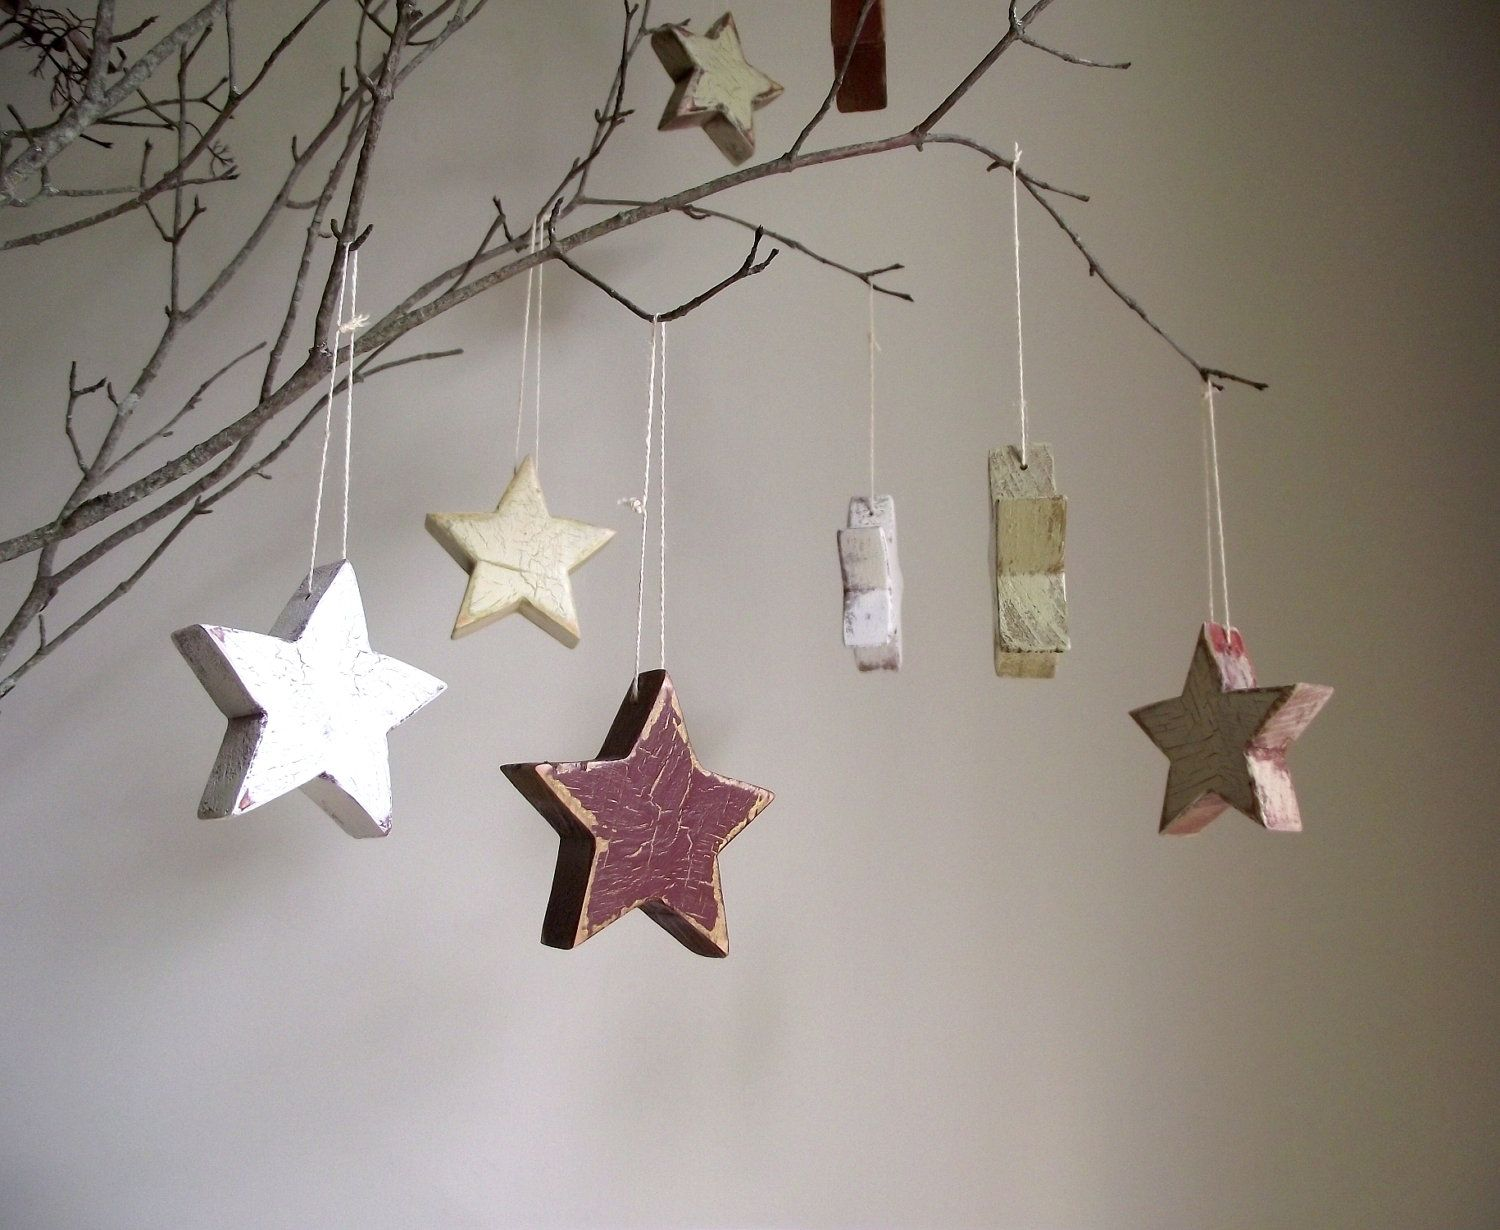 Antiqued Wood Stars Handpainted Decoration Salvaged Wood Farmhouse Country Cottage Decor Set of 4. $16.00, via Etsy.